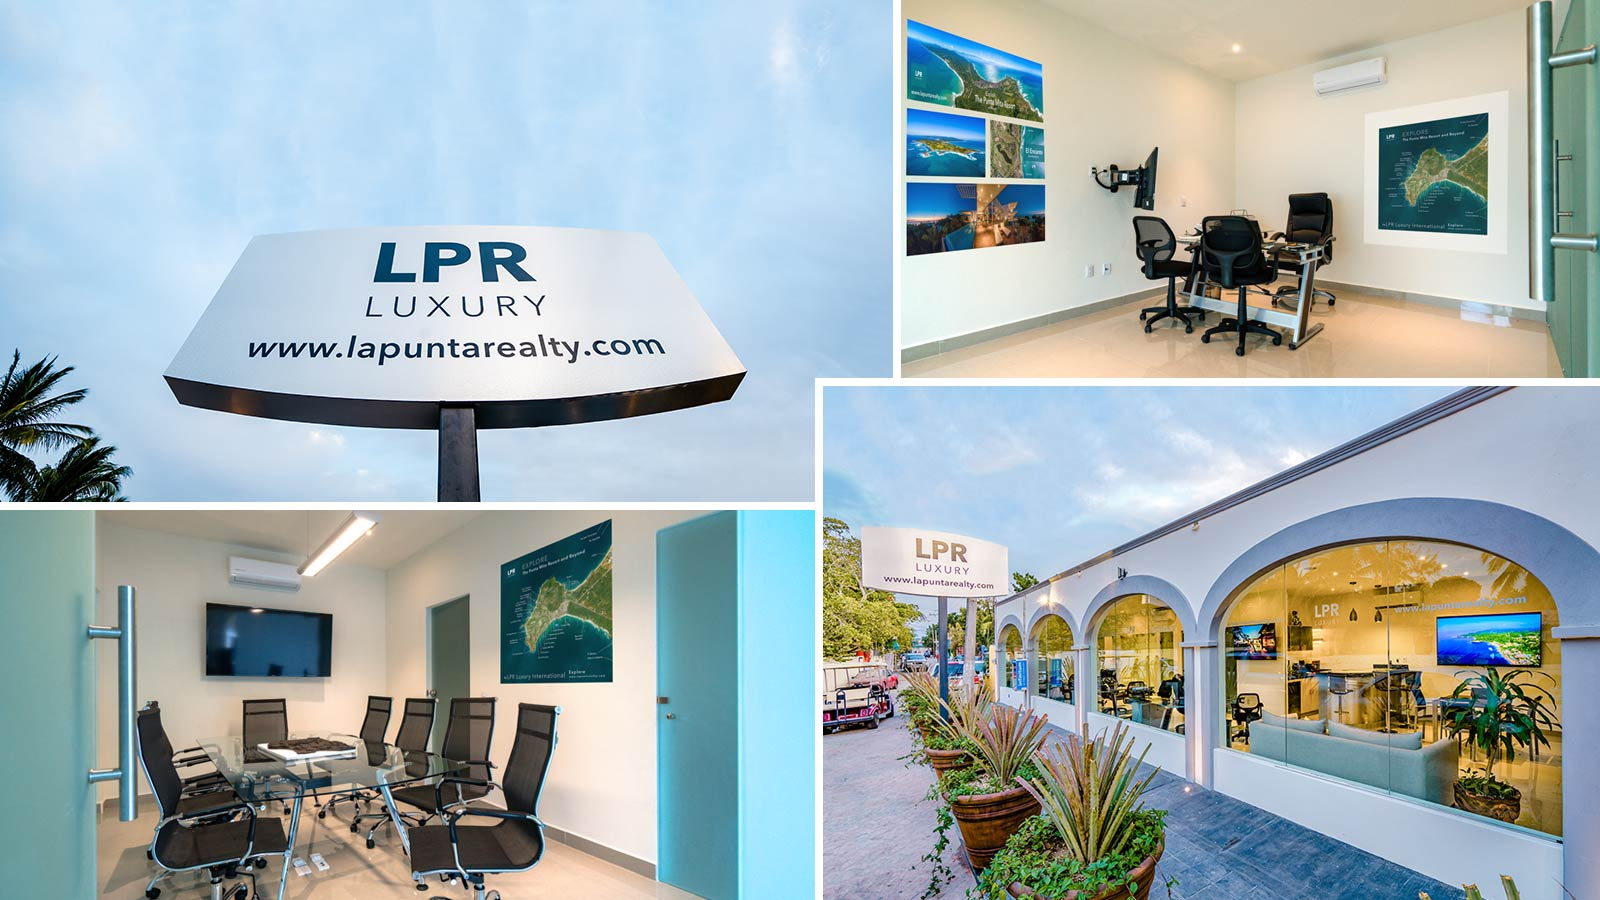 LPR Luxury International - Punta Mita Properties Marketing